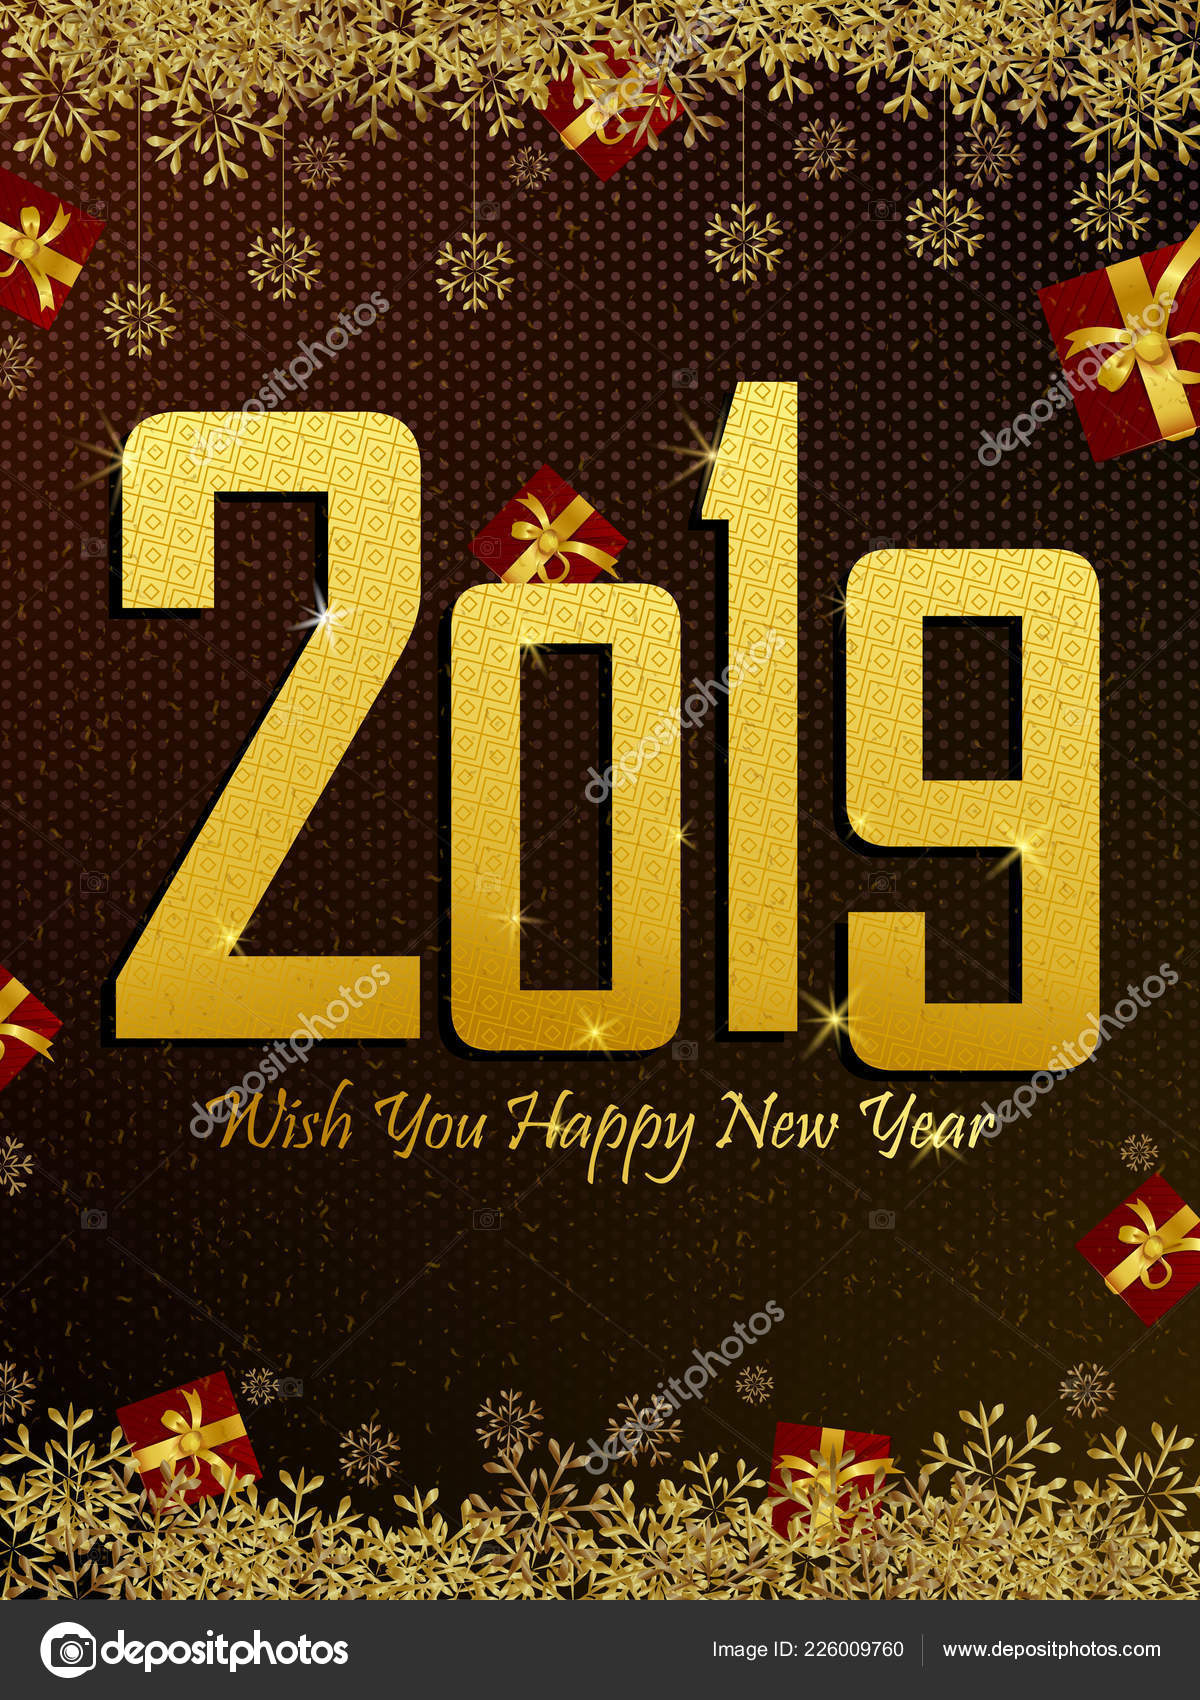 happy new year 2019 wishes greeting card template background design stock vector